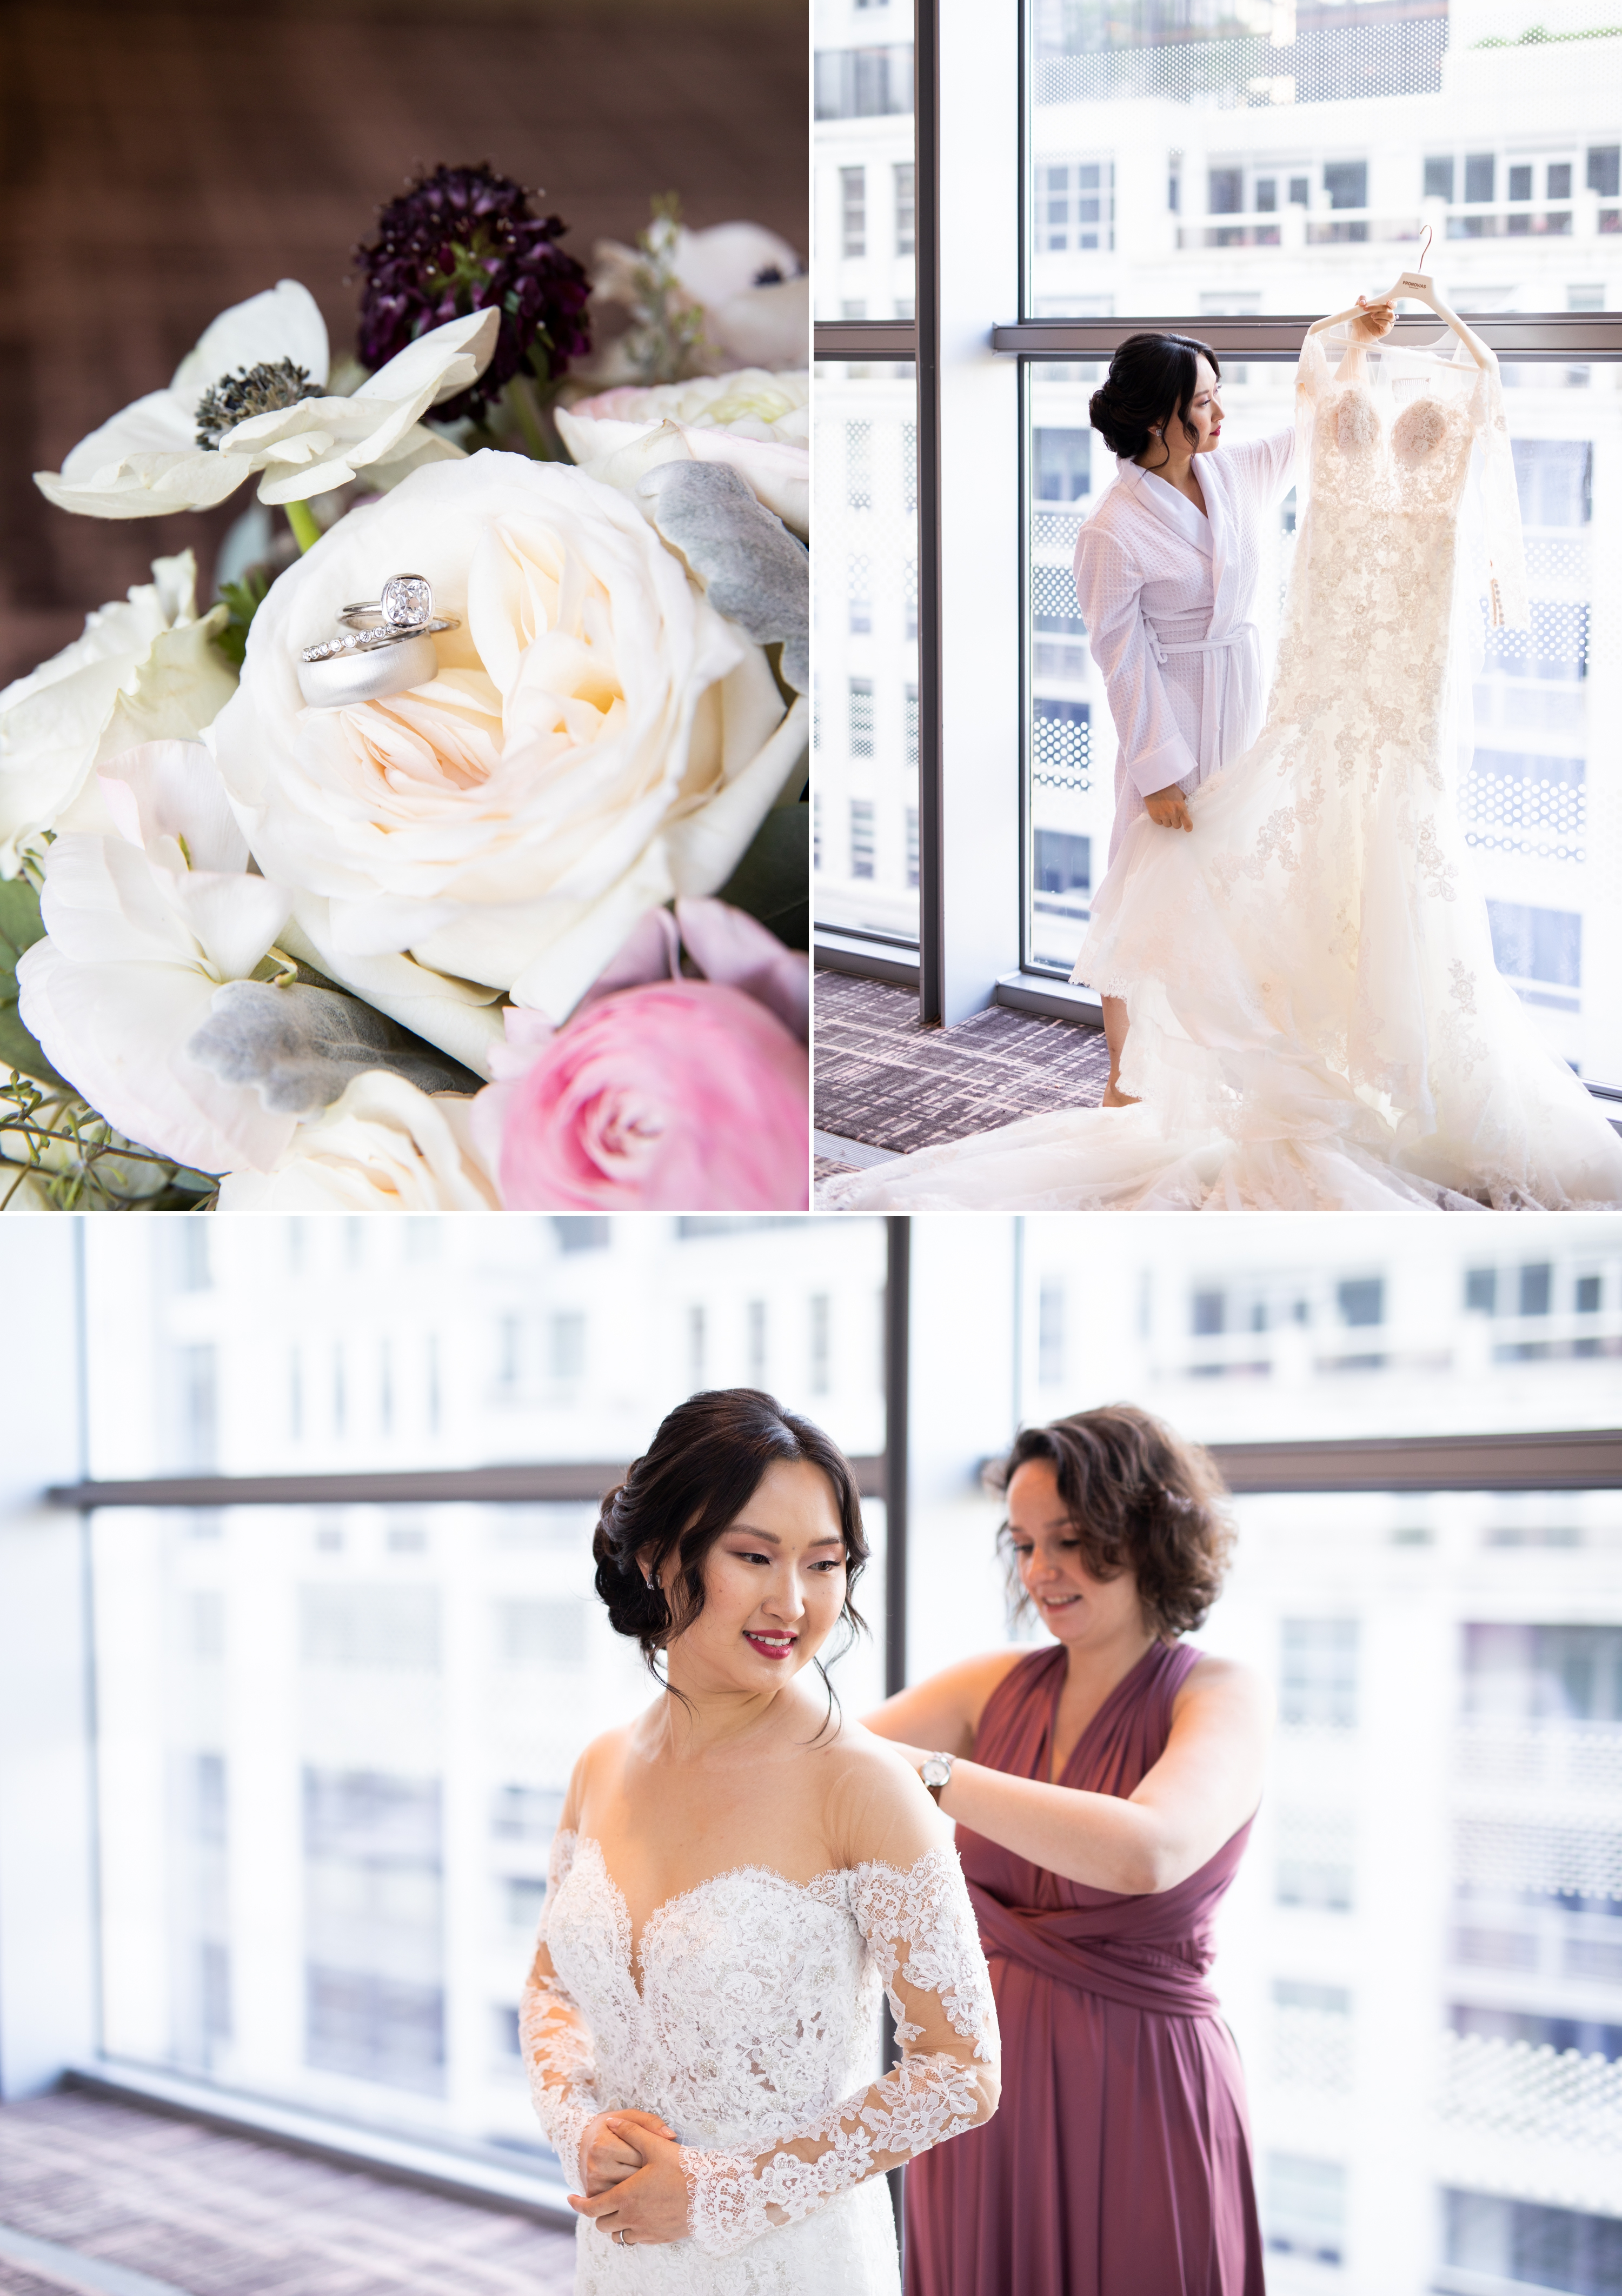 Engagement ring Dress Four Seasons Chinese Wedding Zsuzsi Pal Photography Cindy Brian